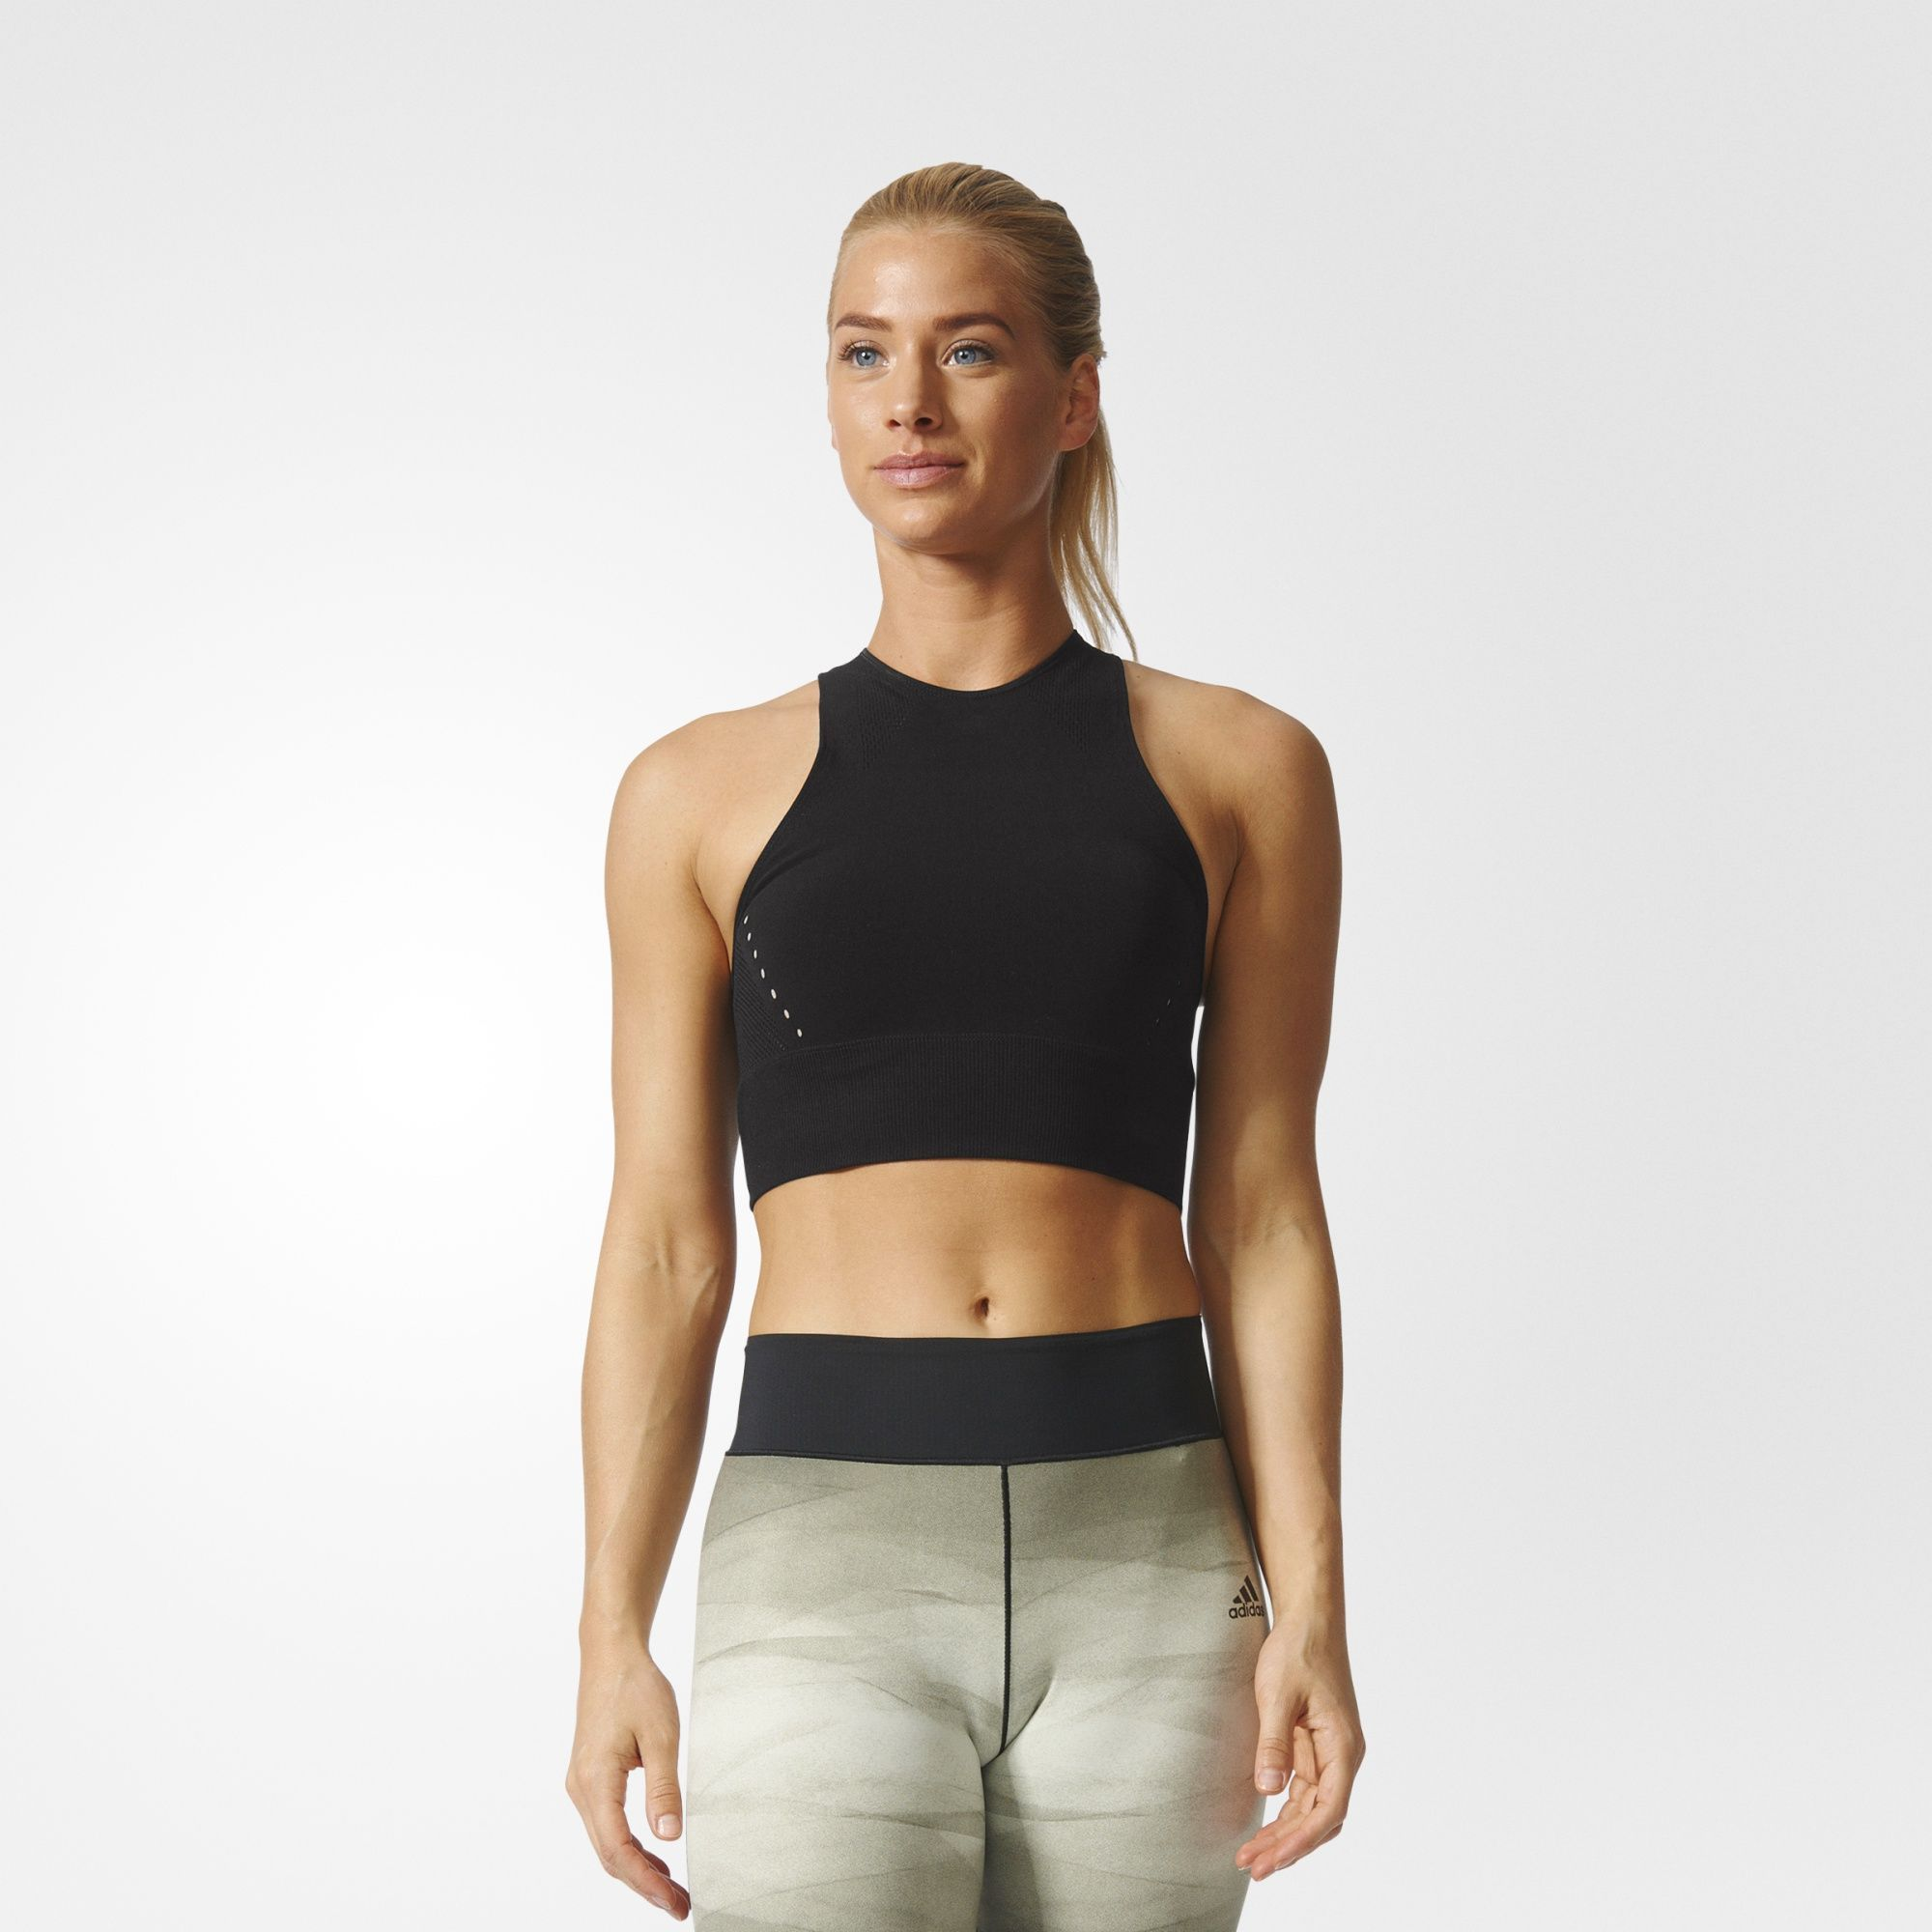 be514a4aebf adidas - warp knit Crop Top | Laser cut / Punch hole | Training tops ...